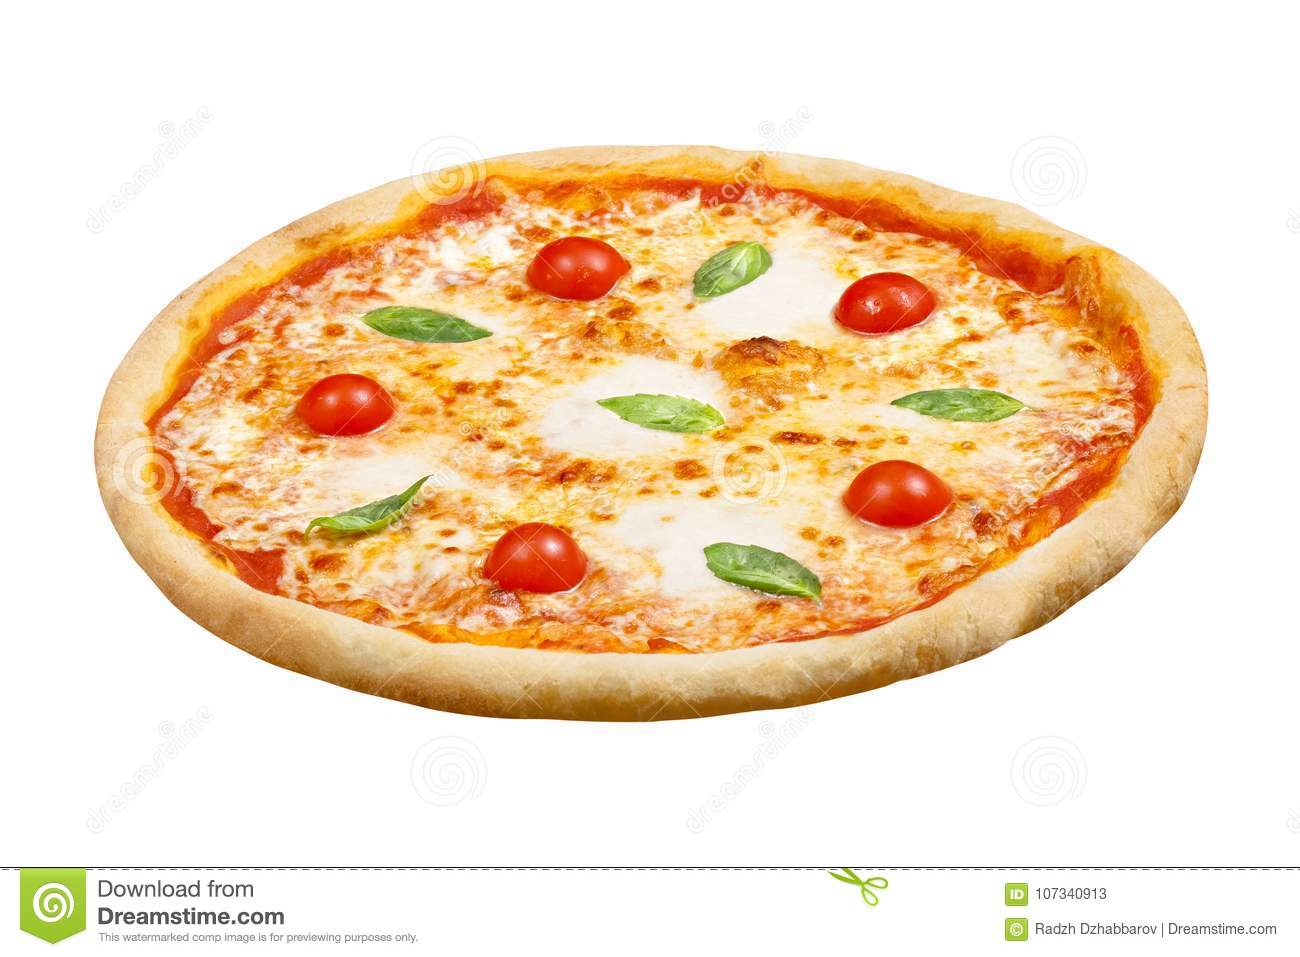 Download Pizza Margarita With Mozzarella Cheese Basil And Tomato Template For Your Design